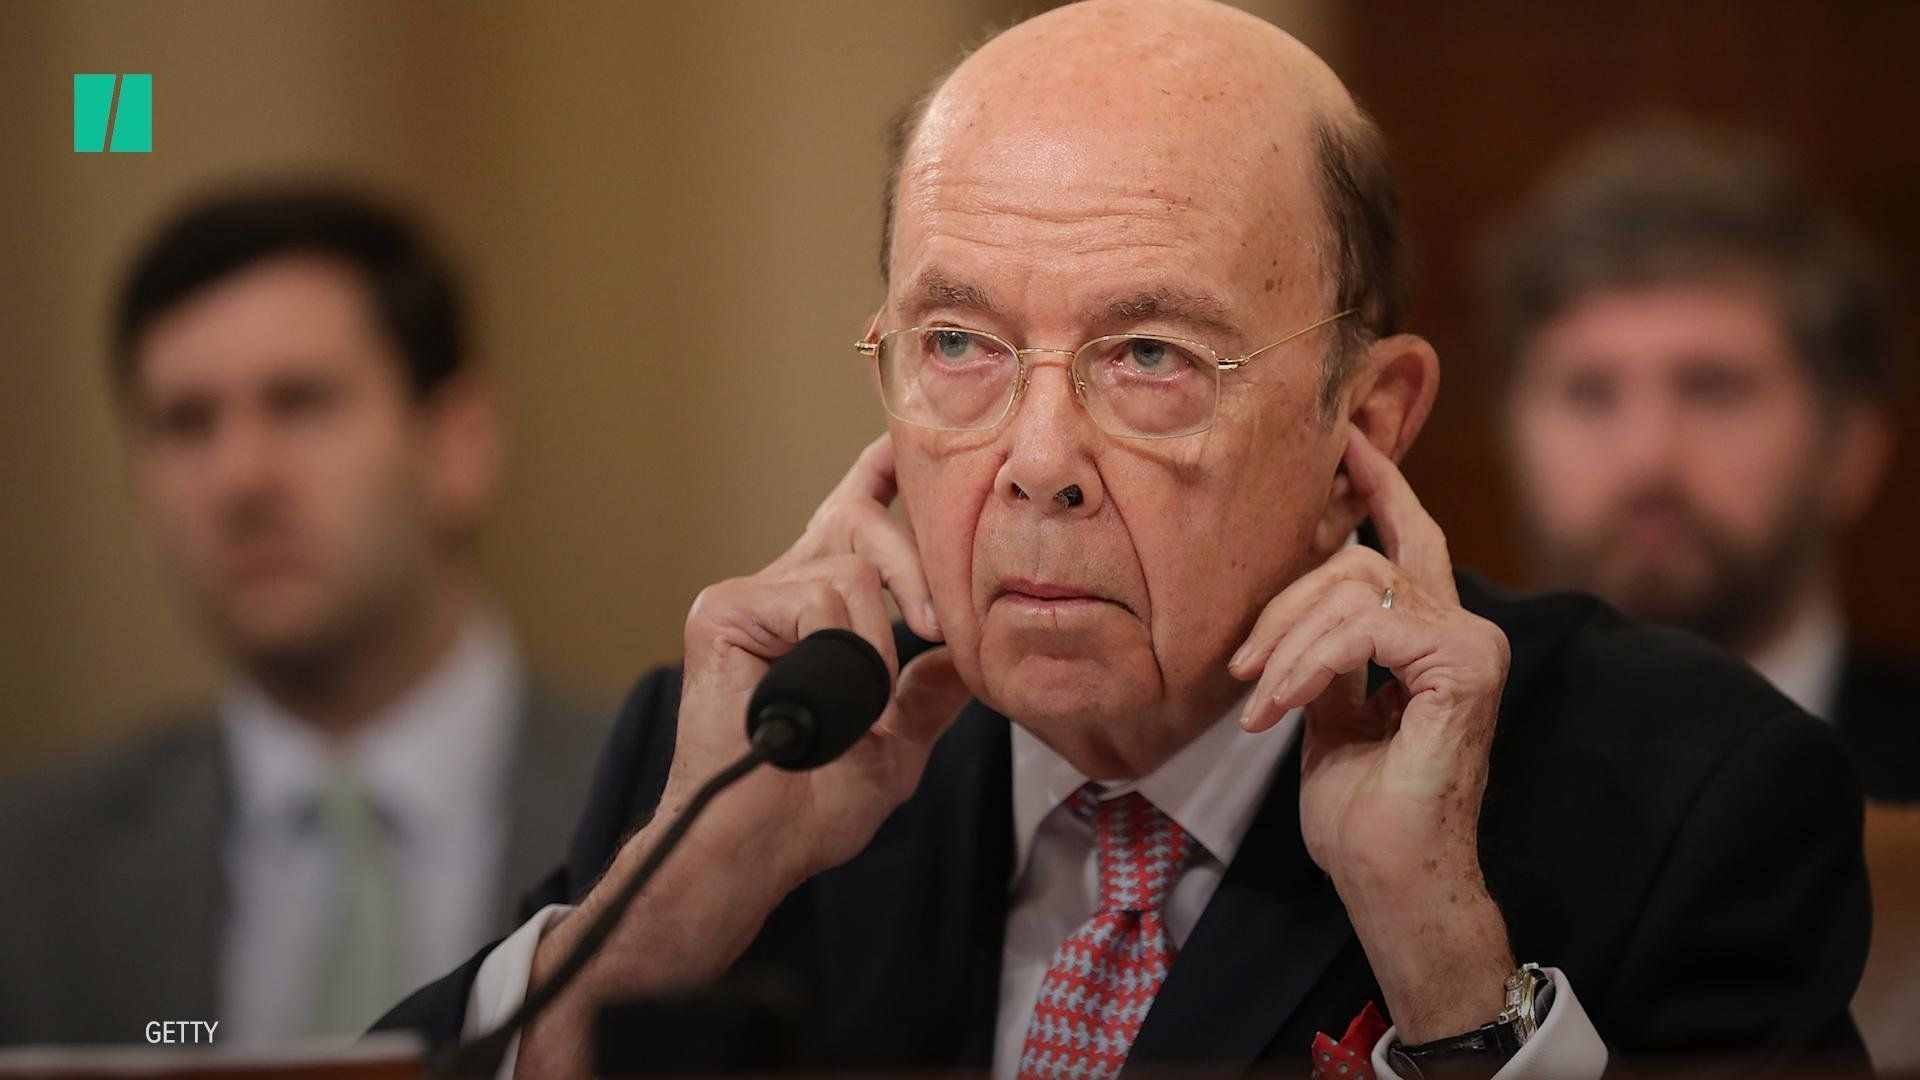 Federal workers are about to miss their second paycheck of the partial government shutdown, but President Donald Trump's secretary of commerce, Wilbur Ross, doesn't understand the big deal.